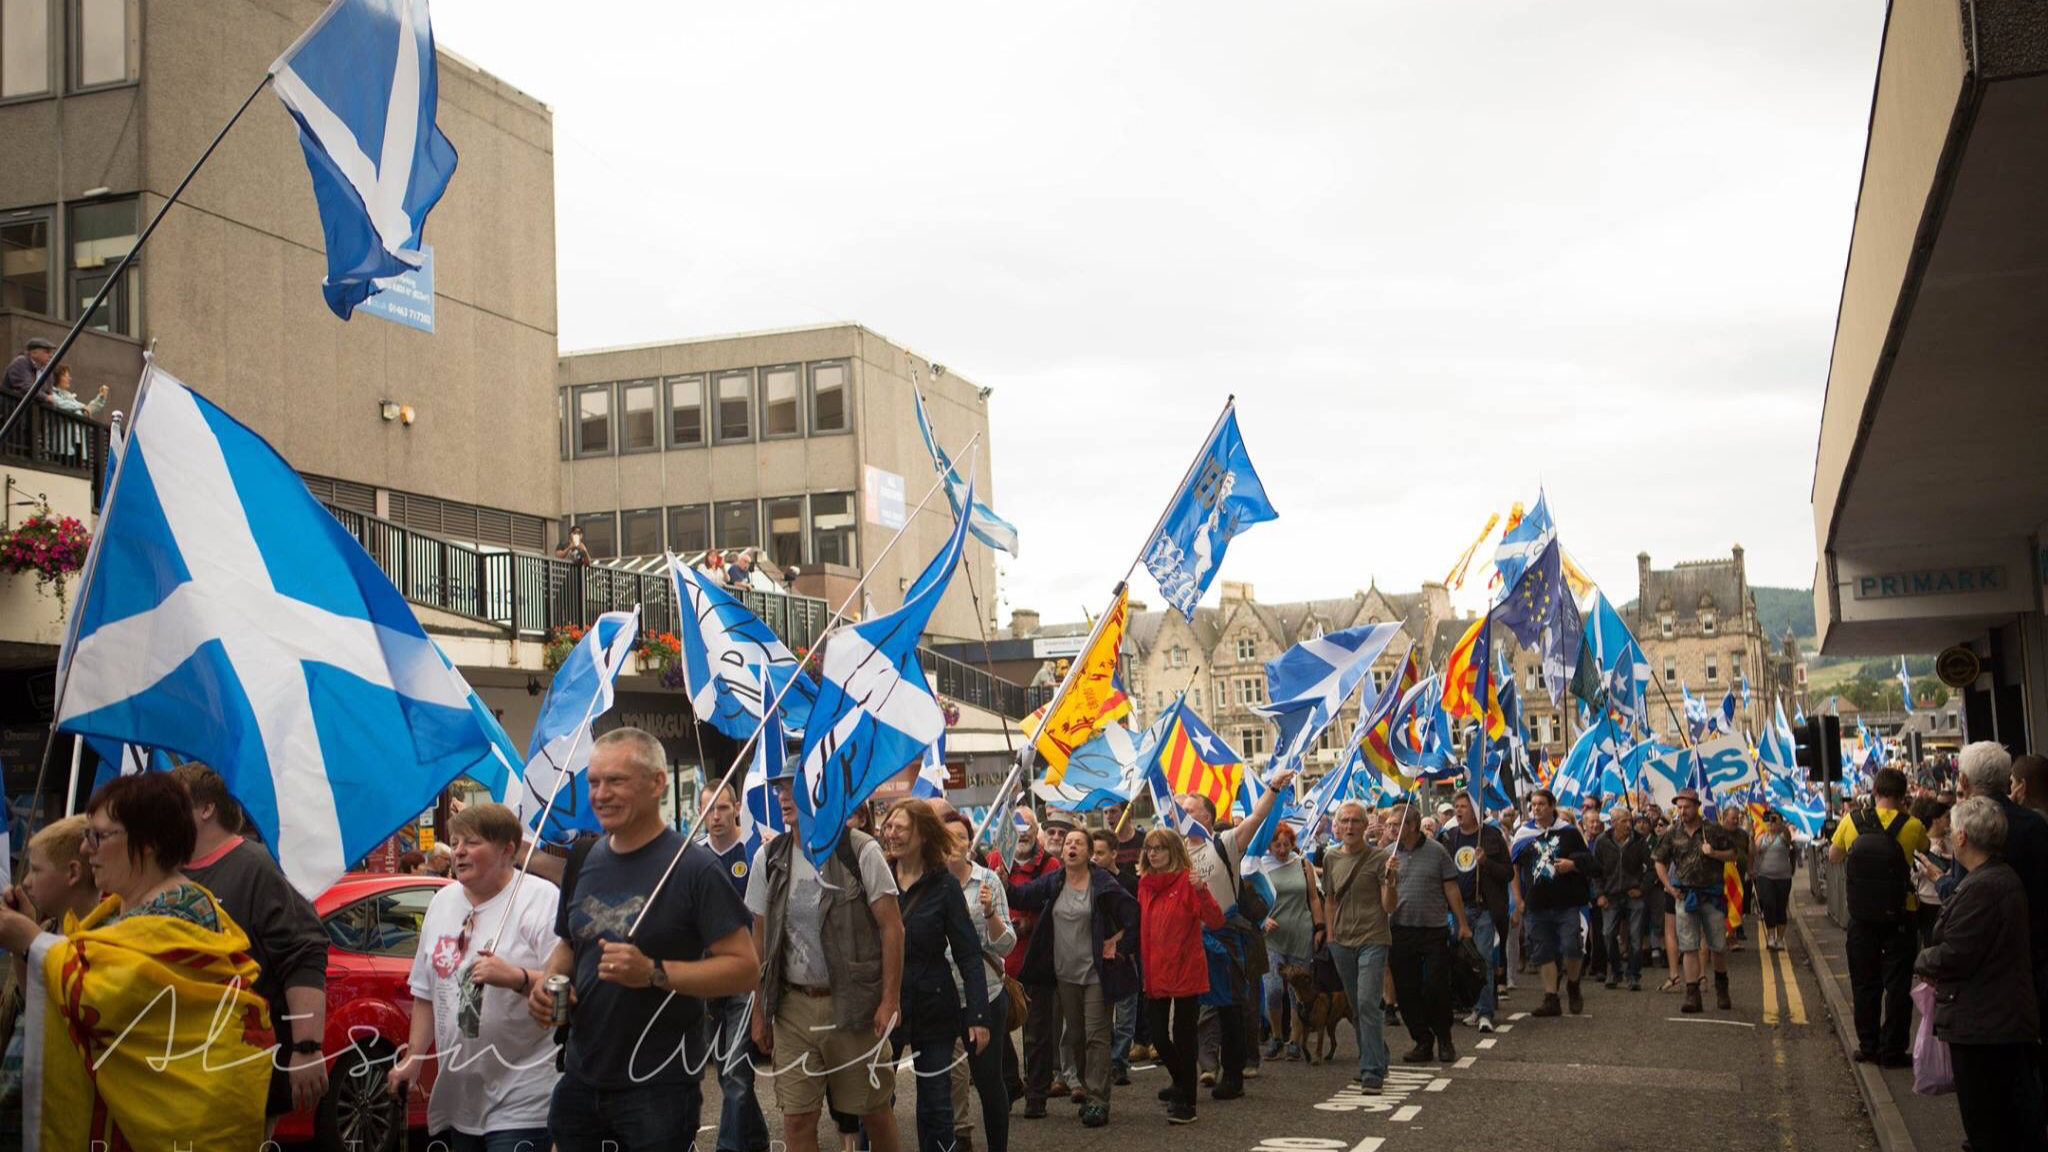 Scotland standing up for our citizens - Highland march, Inverness, camera 1